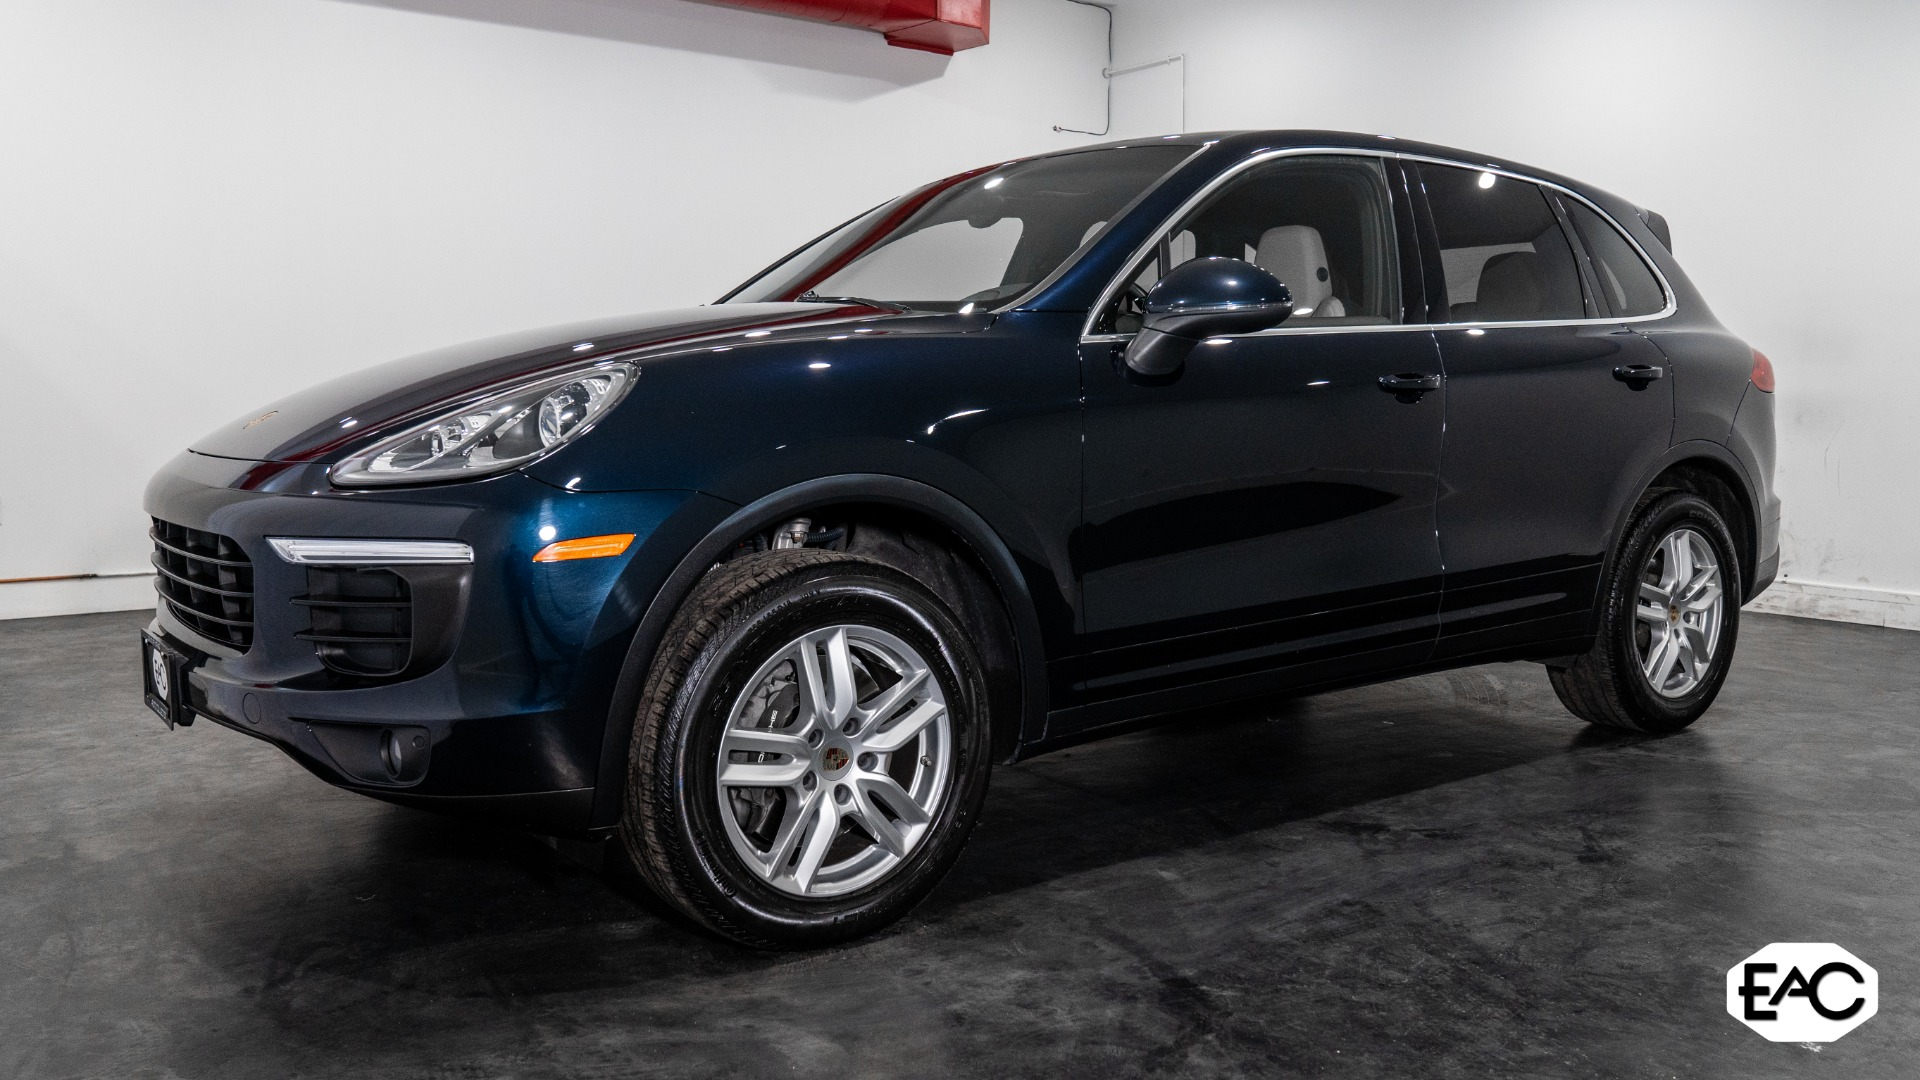 Used 2017 Porsche Cayenne for sale Sold at Empire Auto Collection in Warren MI 48091 1